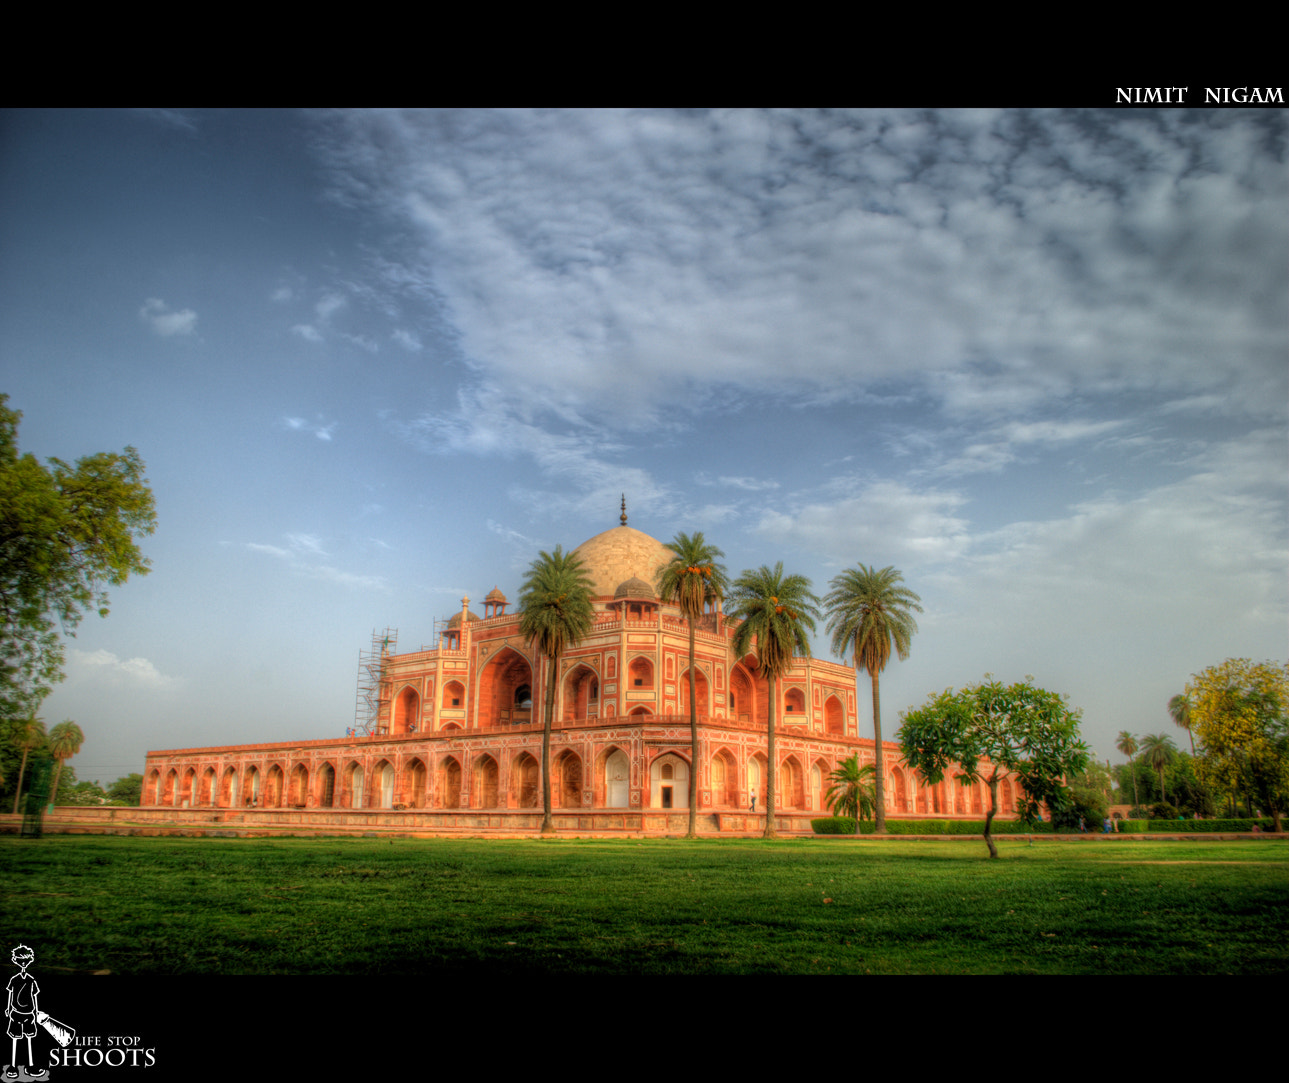 Photograph Humayun's Tomb... by Nimit Nigam on 500px